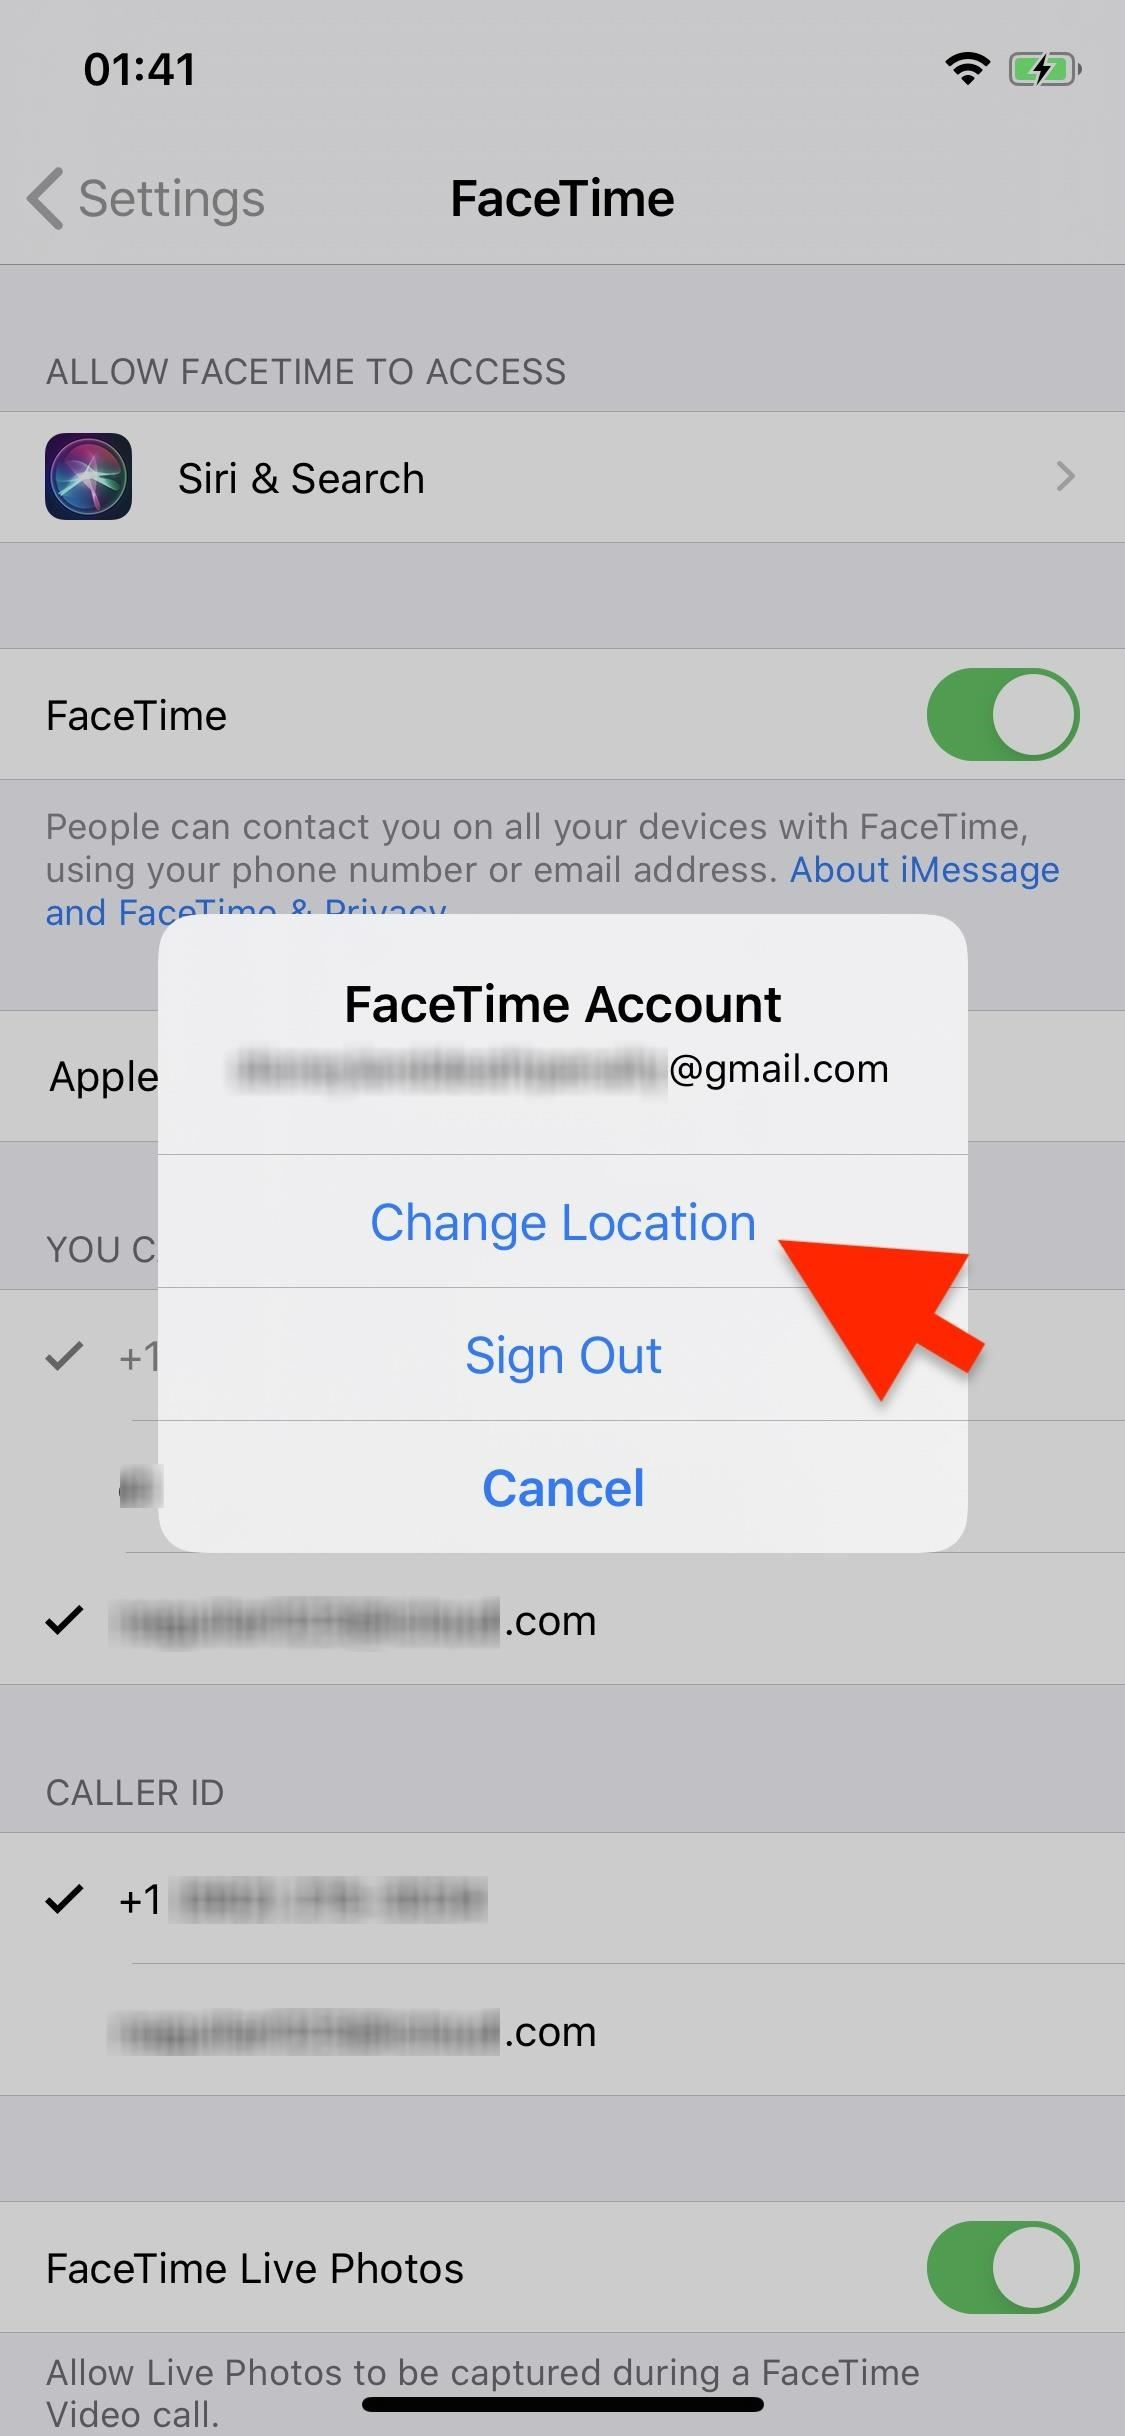 11 Tips for FaceTime Chatting with Friends & Family from Your iPhone